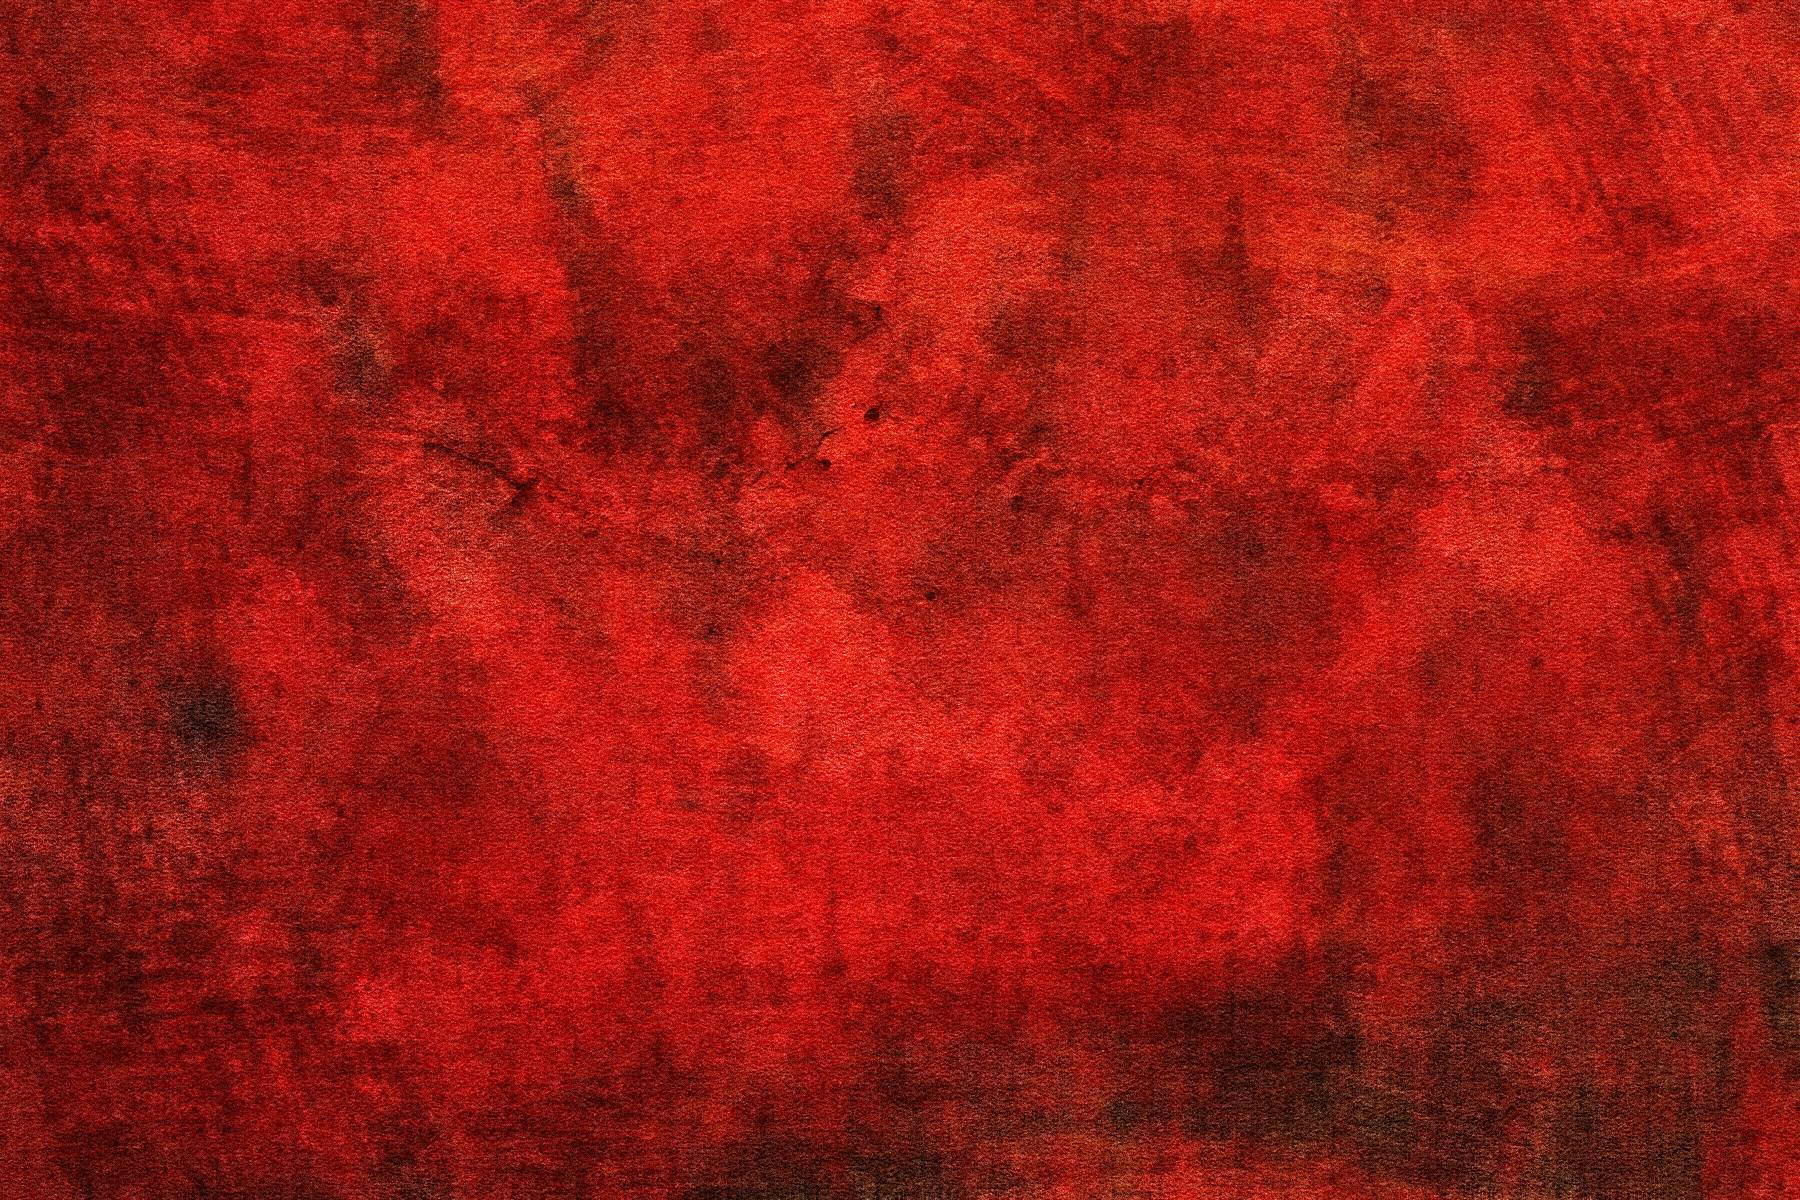 red textured backgrounds - photo #15